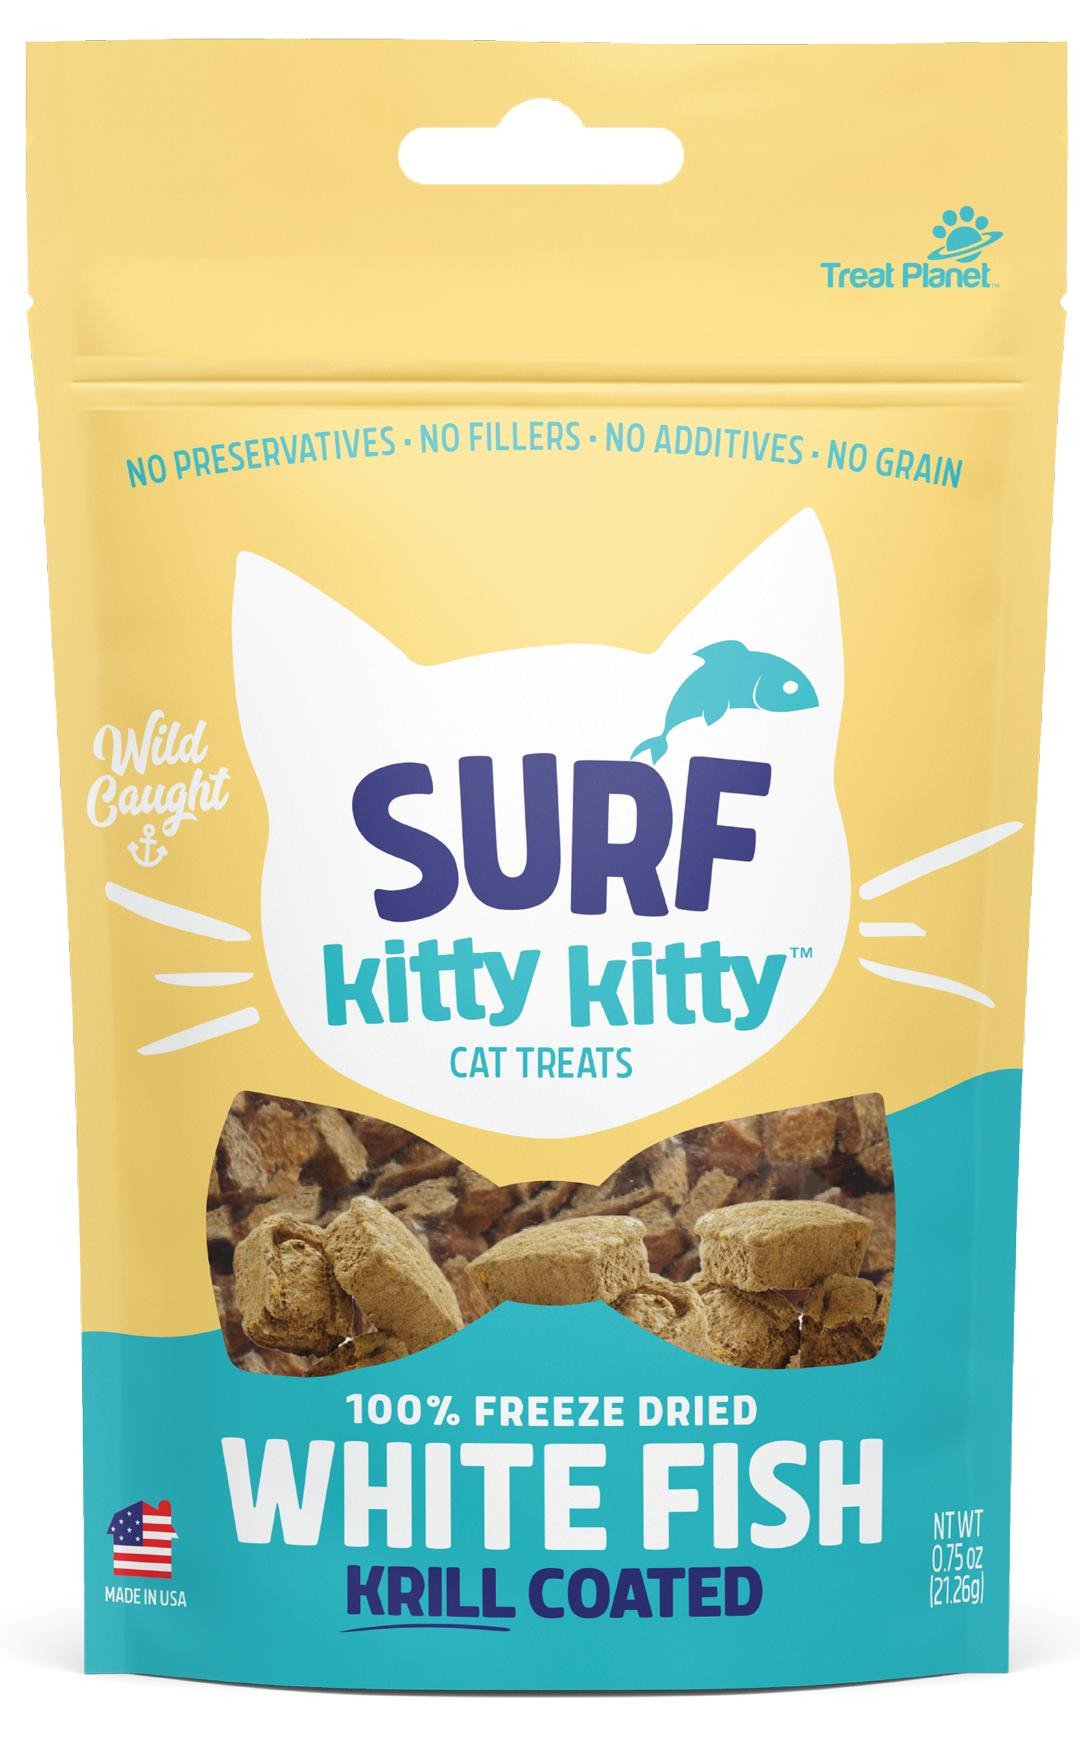 Surf Kitty Kitty Freeze Dried White Fish Cat Treats with Krill Coating, 0.6-oz